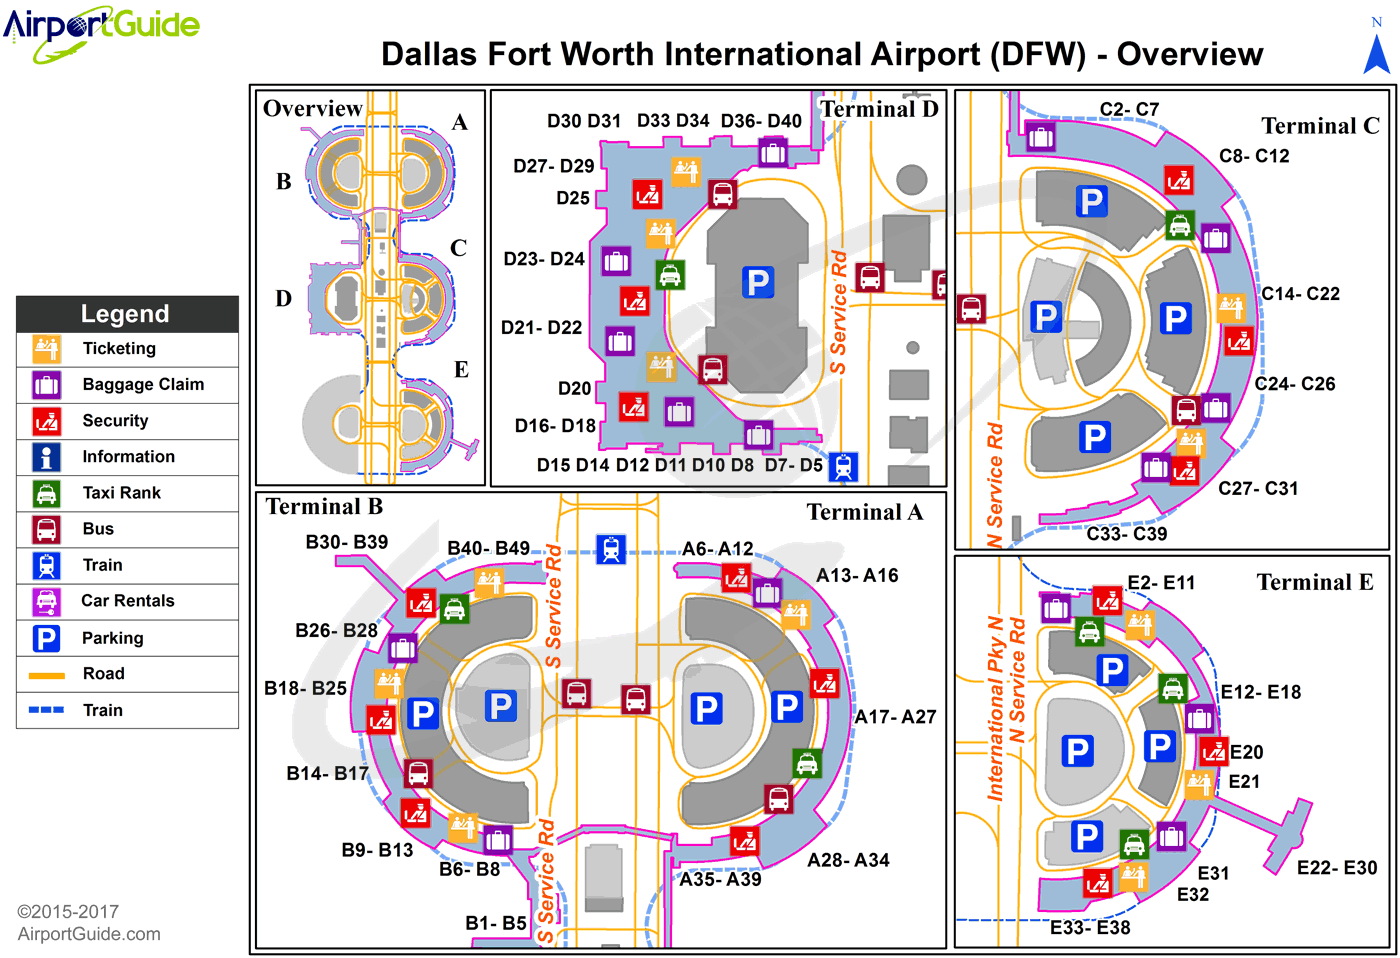 Dfw Airport Guide Map Dallas Fort Worth   Dallas Fort Worth International (DFW) Airport